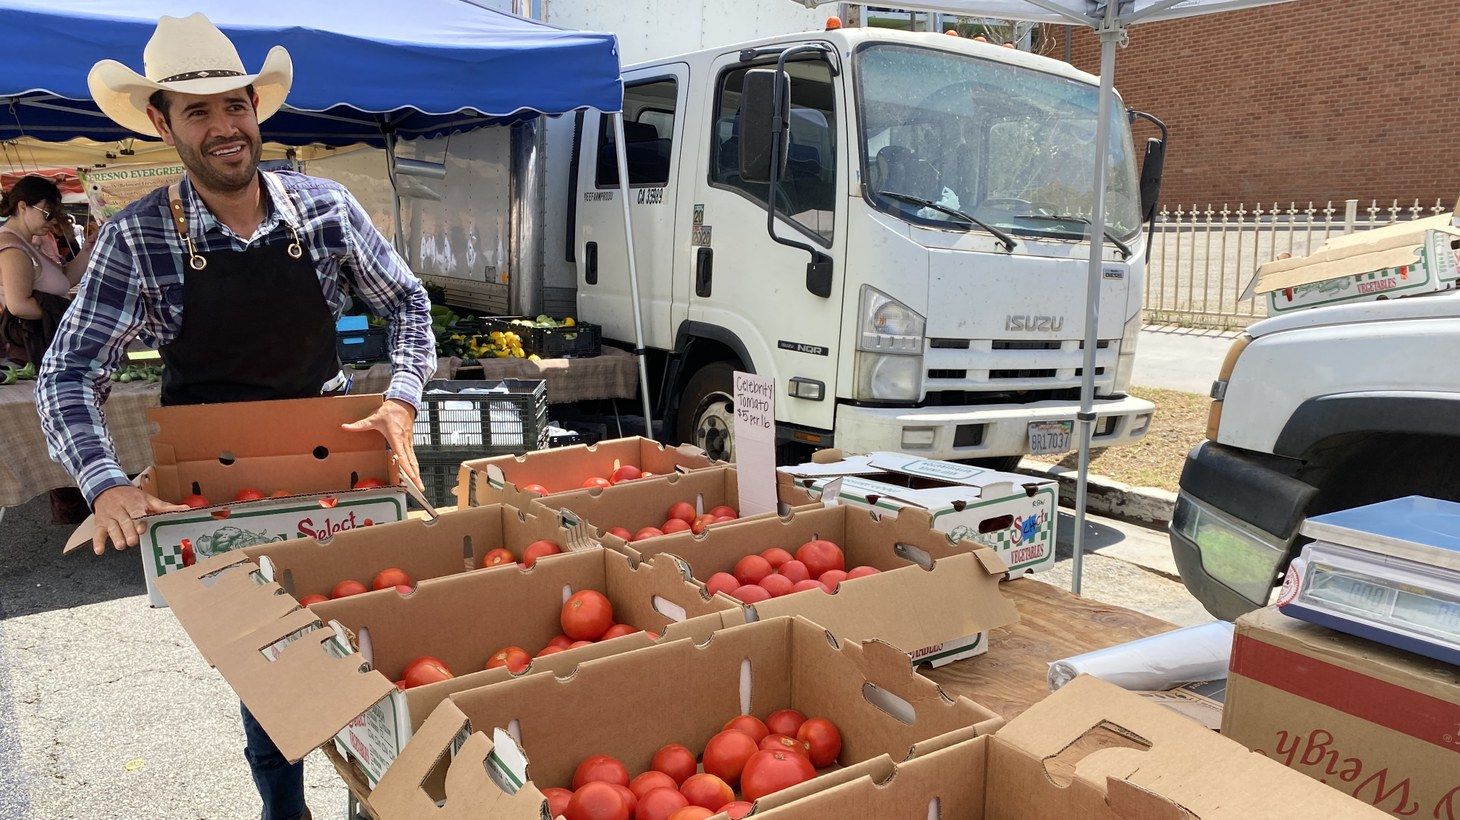 Victor Gomez is bringing tomatoes from Paso Robles all summer long.